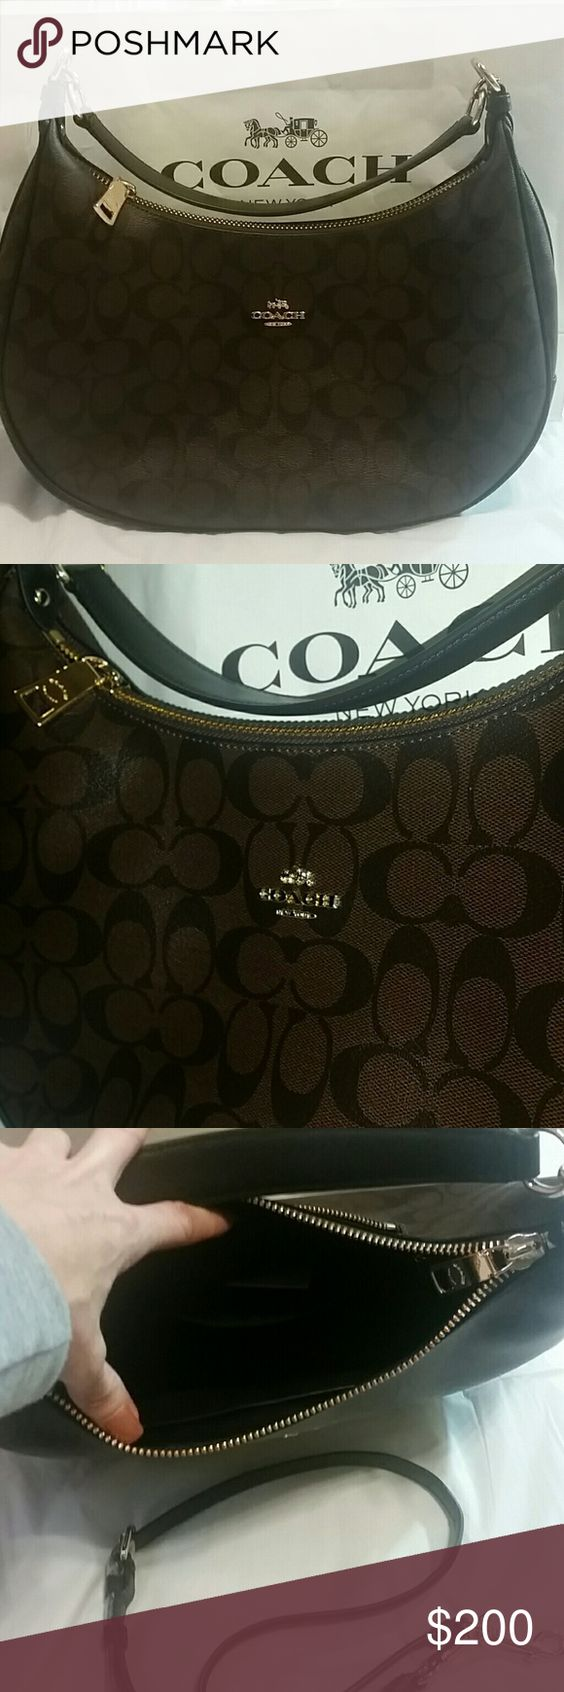 """Coach Signature Canvas Hobo Brn/Blk NWT Coach Signature Canvas Hobo Shoulder Bag. NWT  Detachable and adjustable strap, large zipper pocket, 2 inside pockets, outside zip pocket, gold hardware Depth: 5"""" Height: 12.5"""" Width: 12"""" Strap drop: 11.5"""" Coach Bags Hobos"""